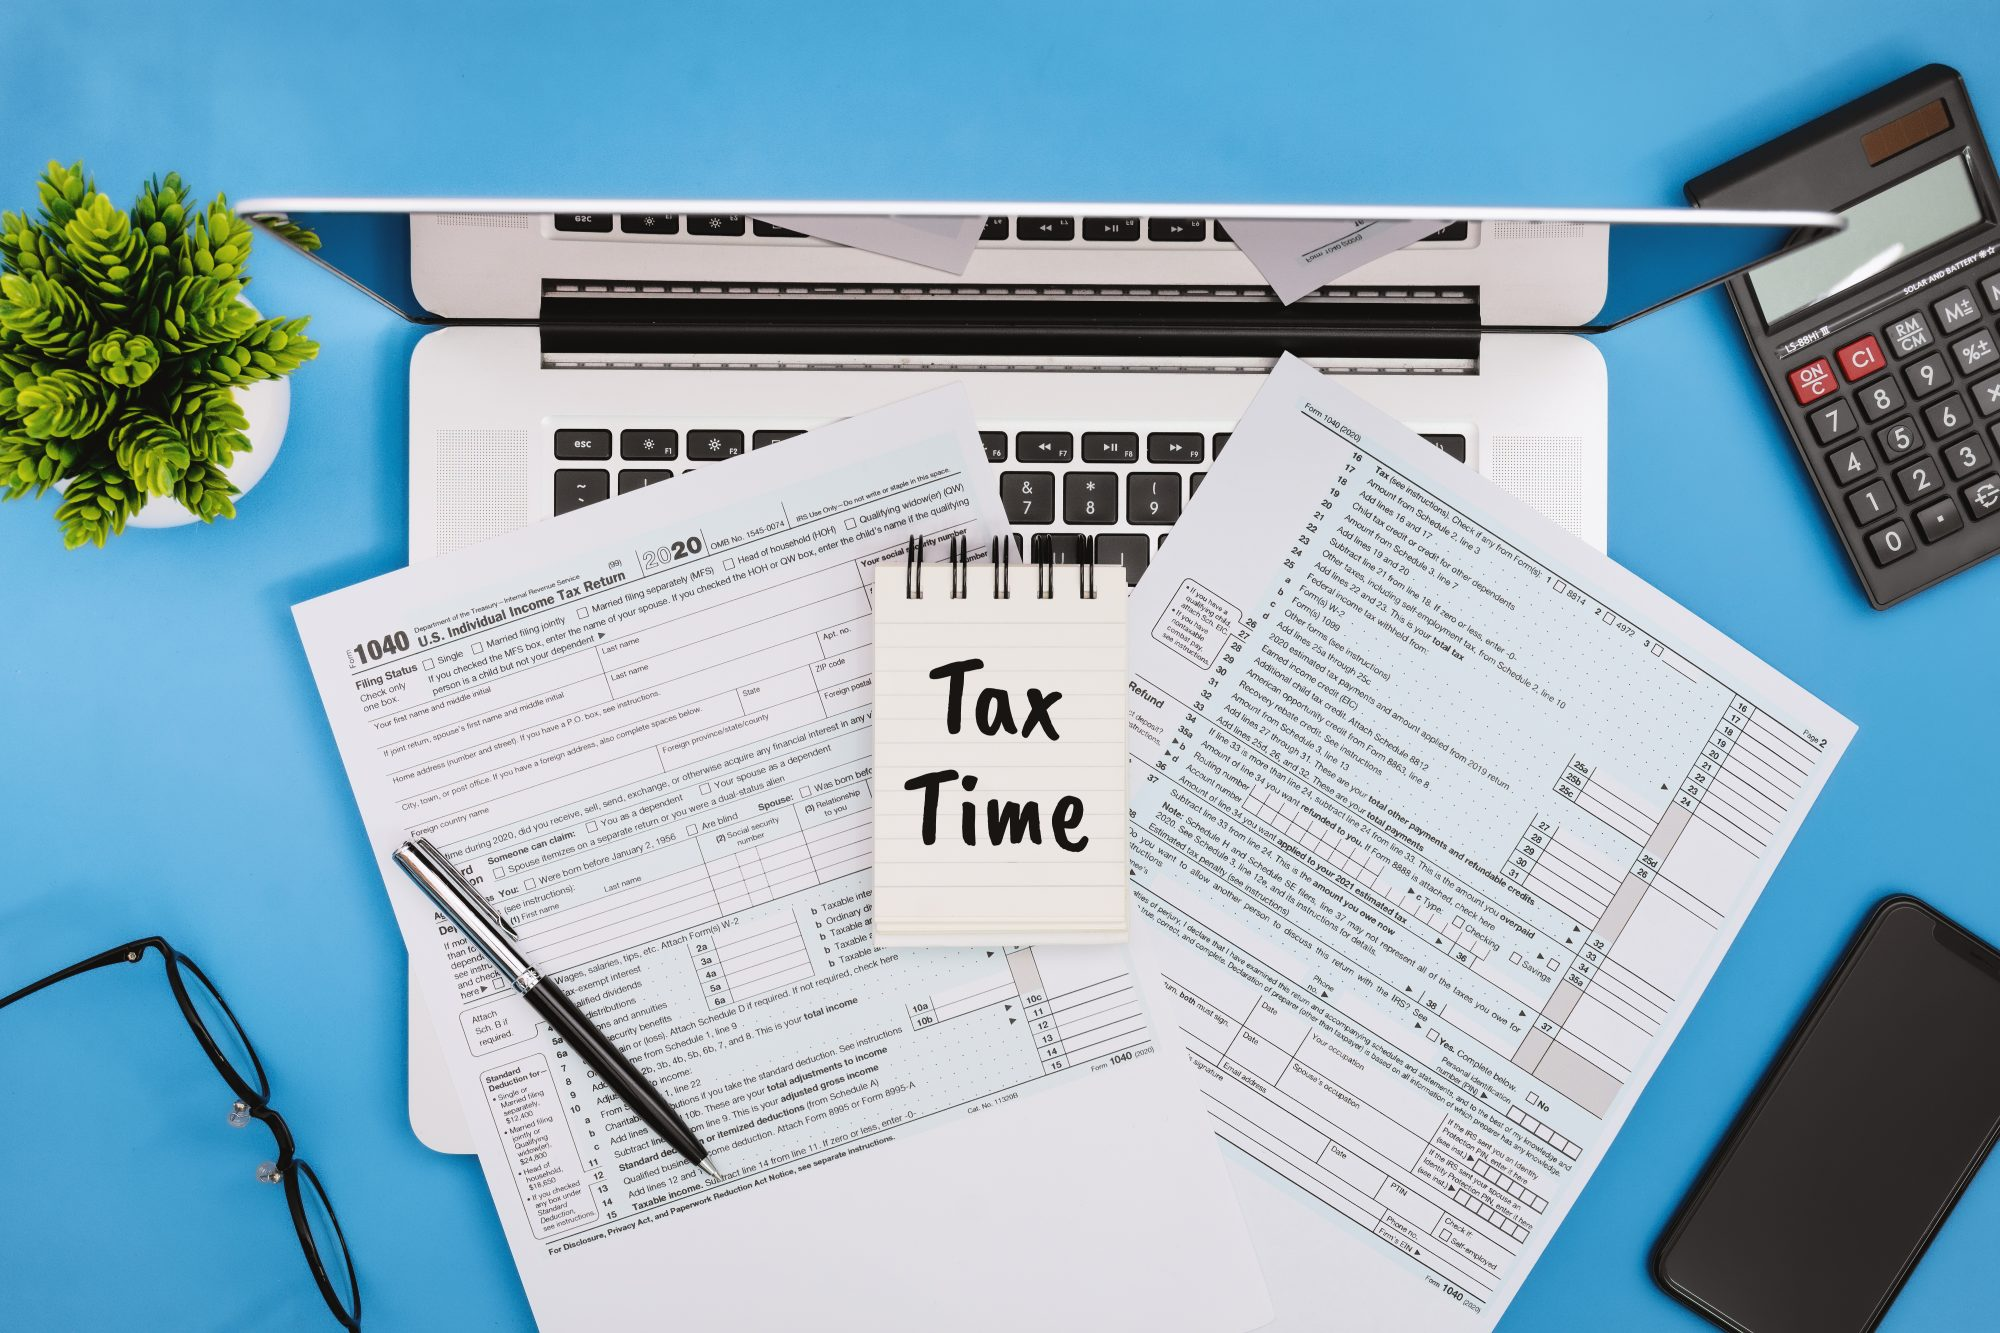 what to expect when calling irs - tips, what to have